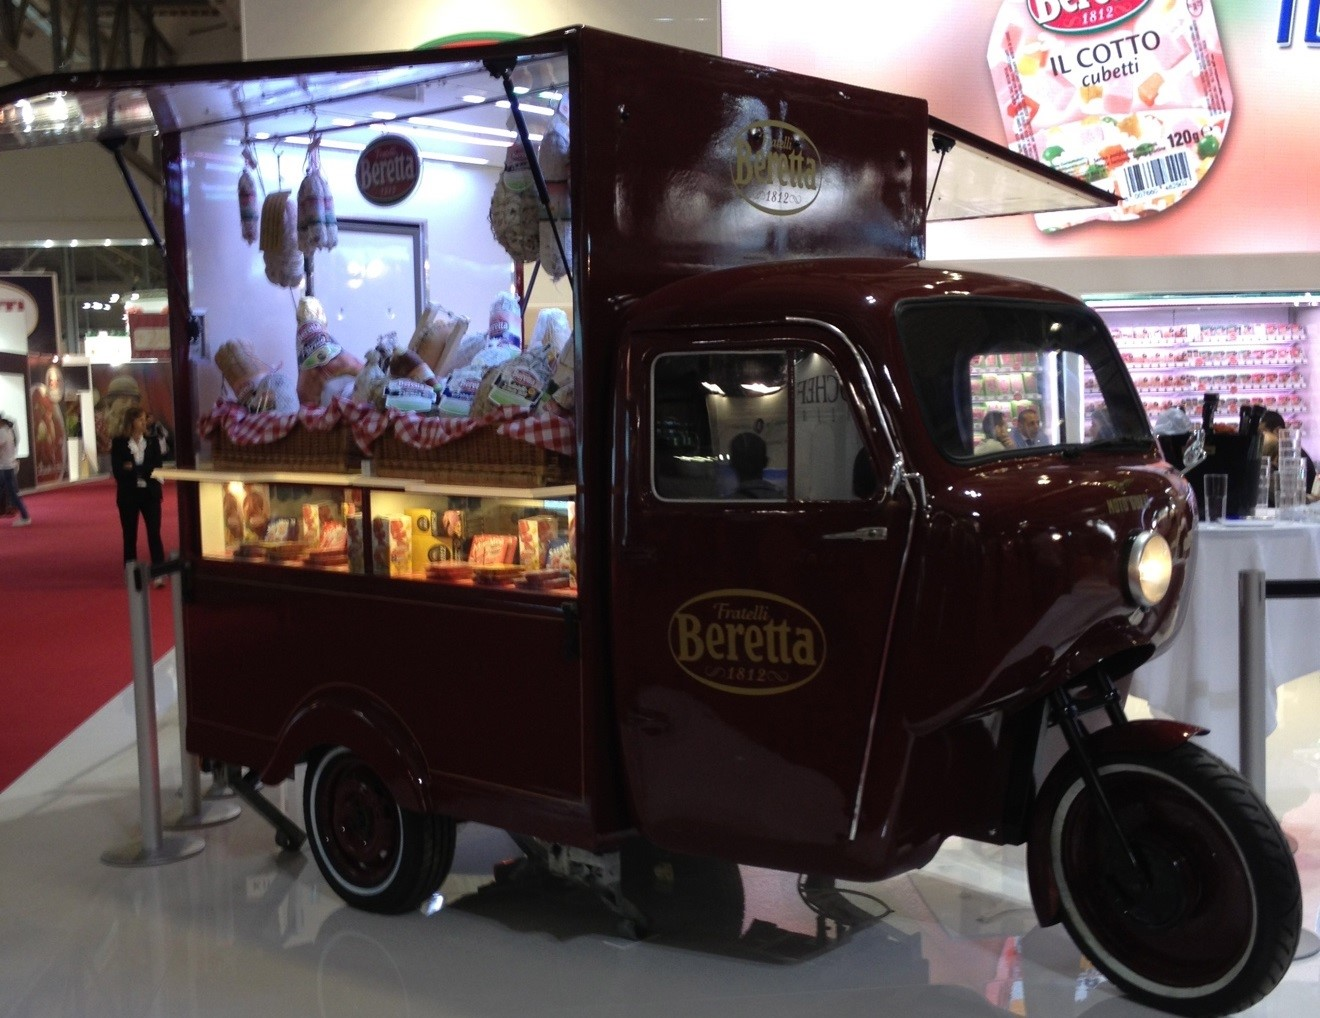 Figure 9. Old-fashioned food truck at TuttoFood.